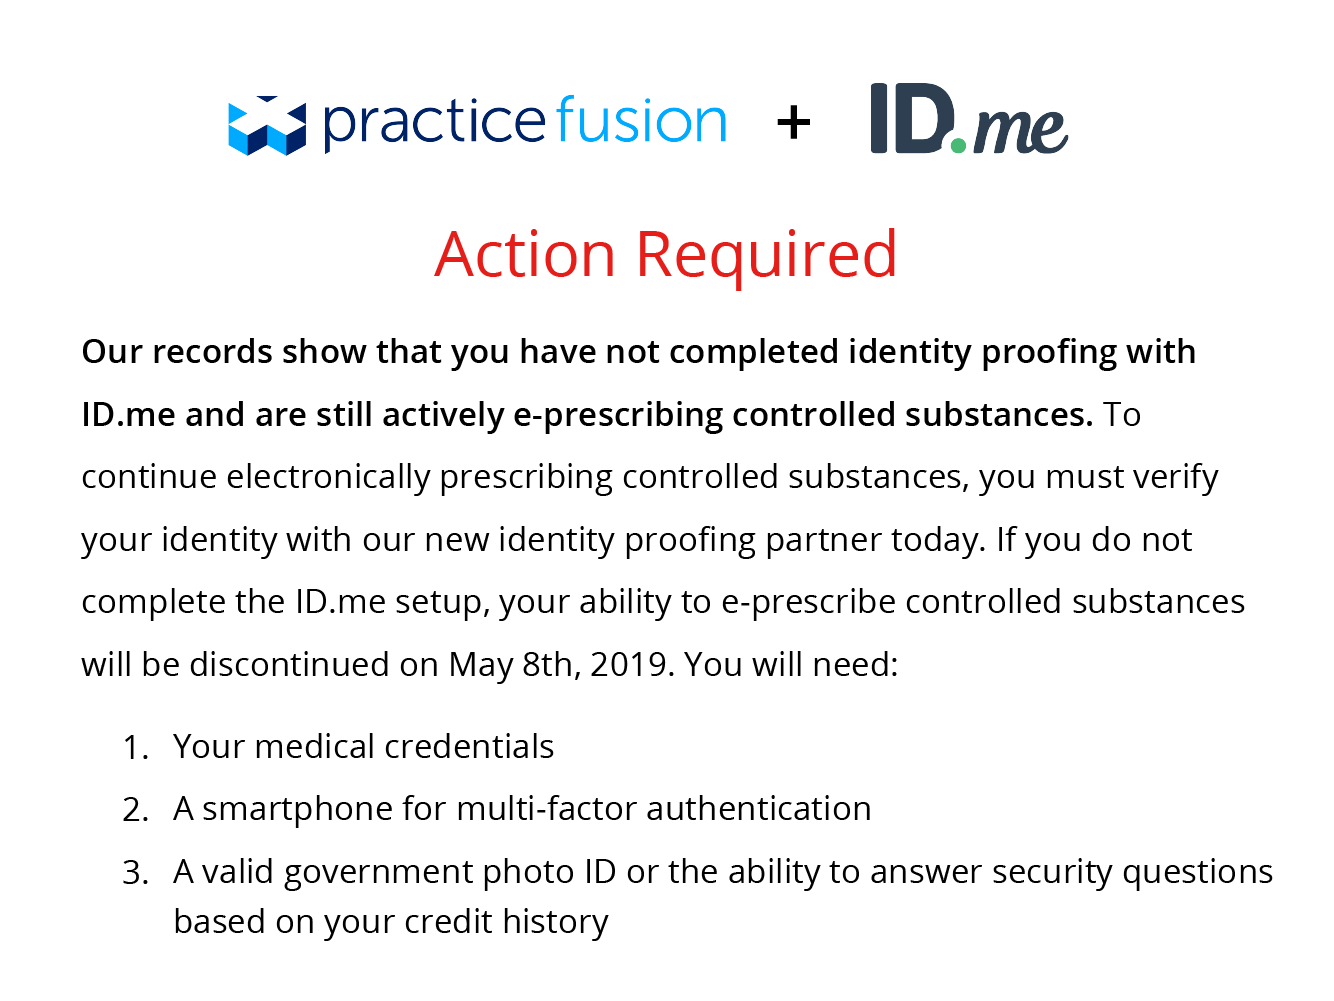 Our record show that you have not completed identity proofing with ID.me and are still actively e-prescribing controlled substances